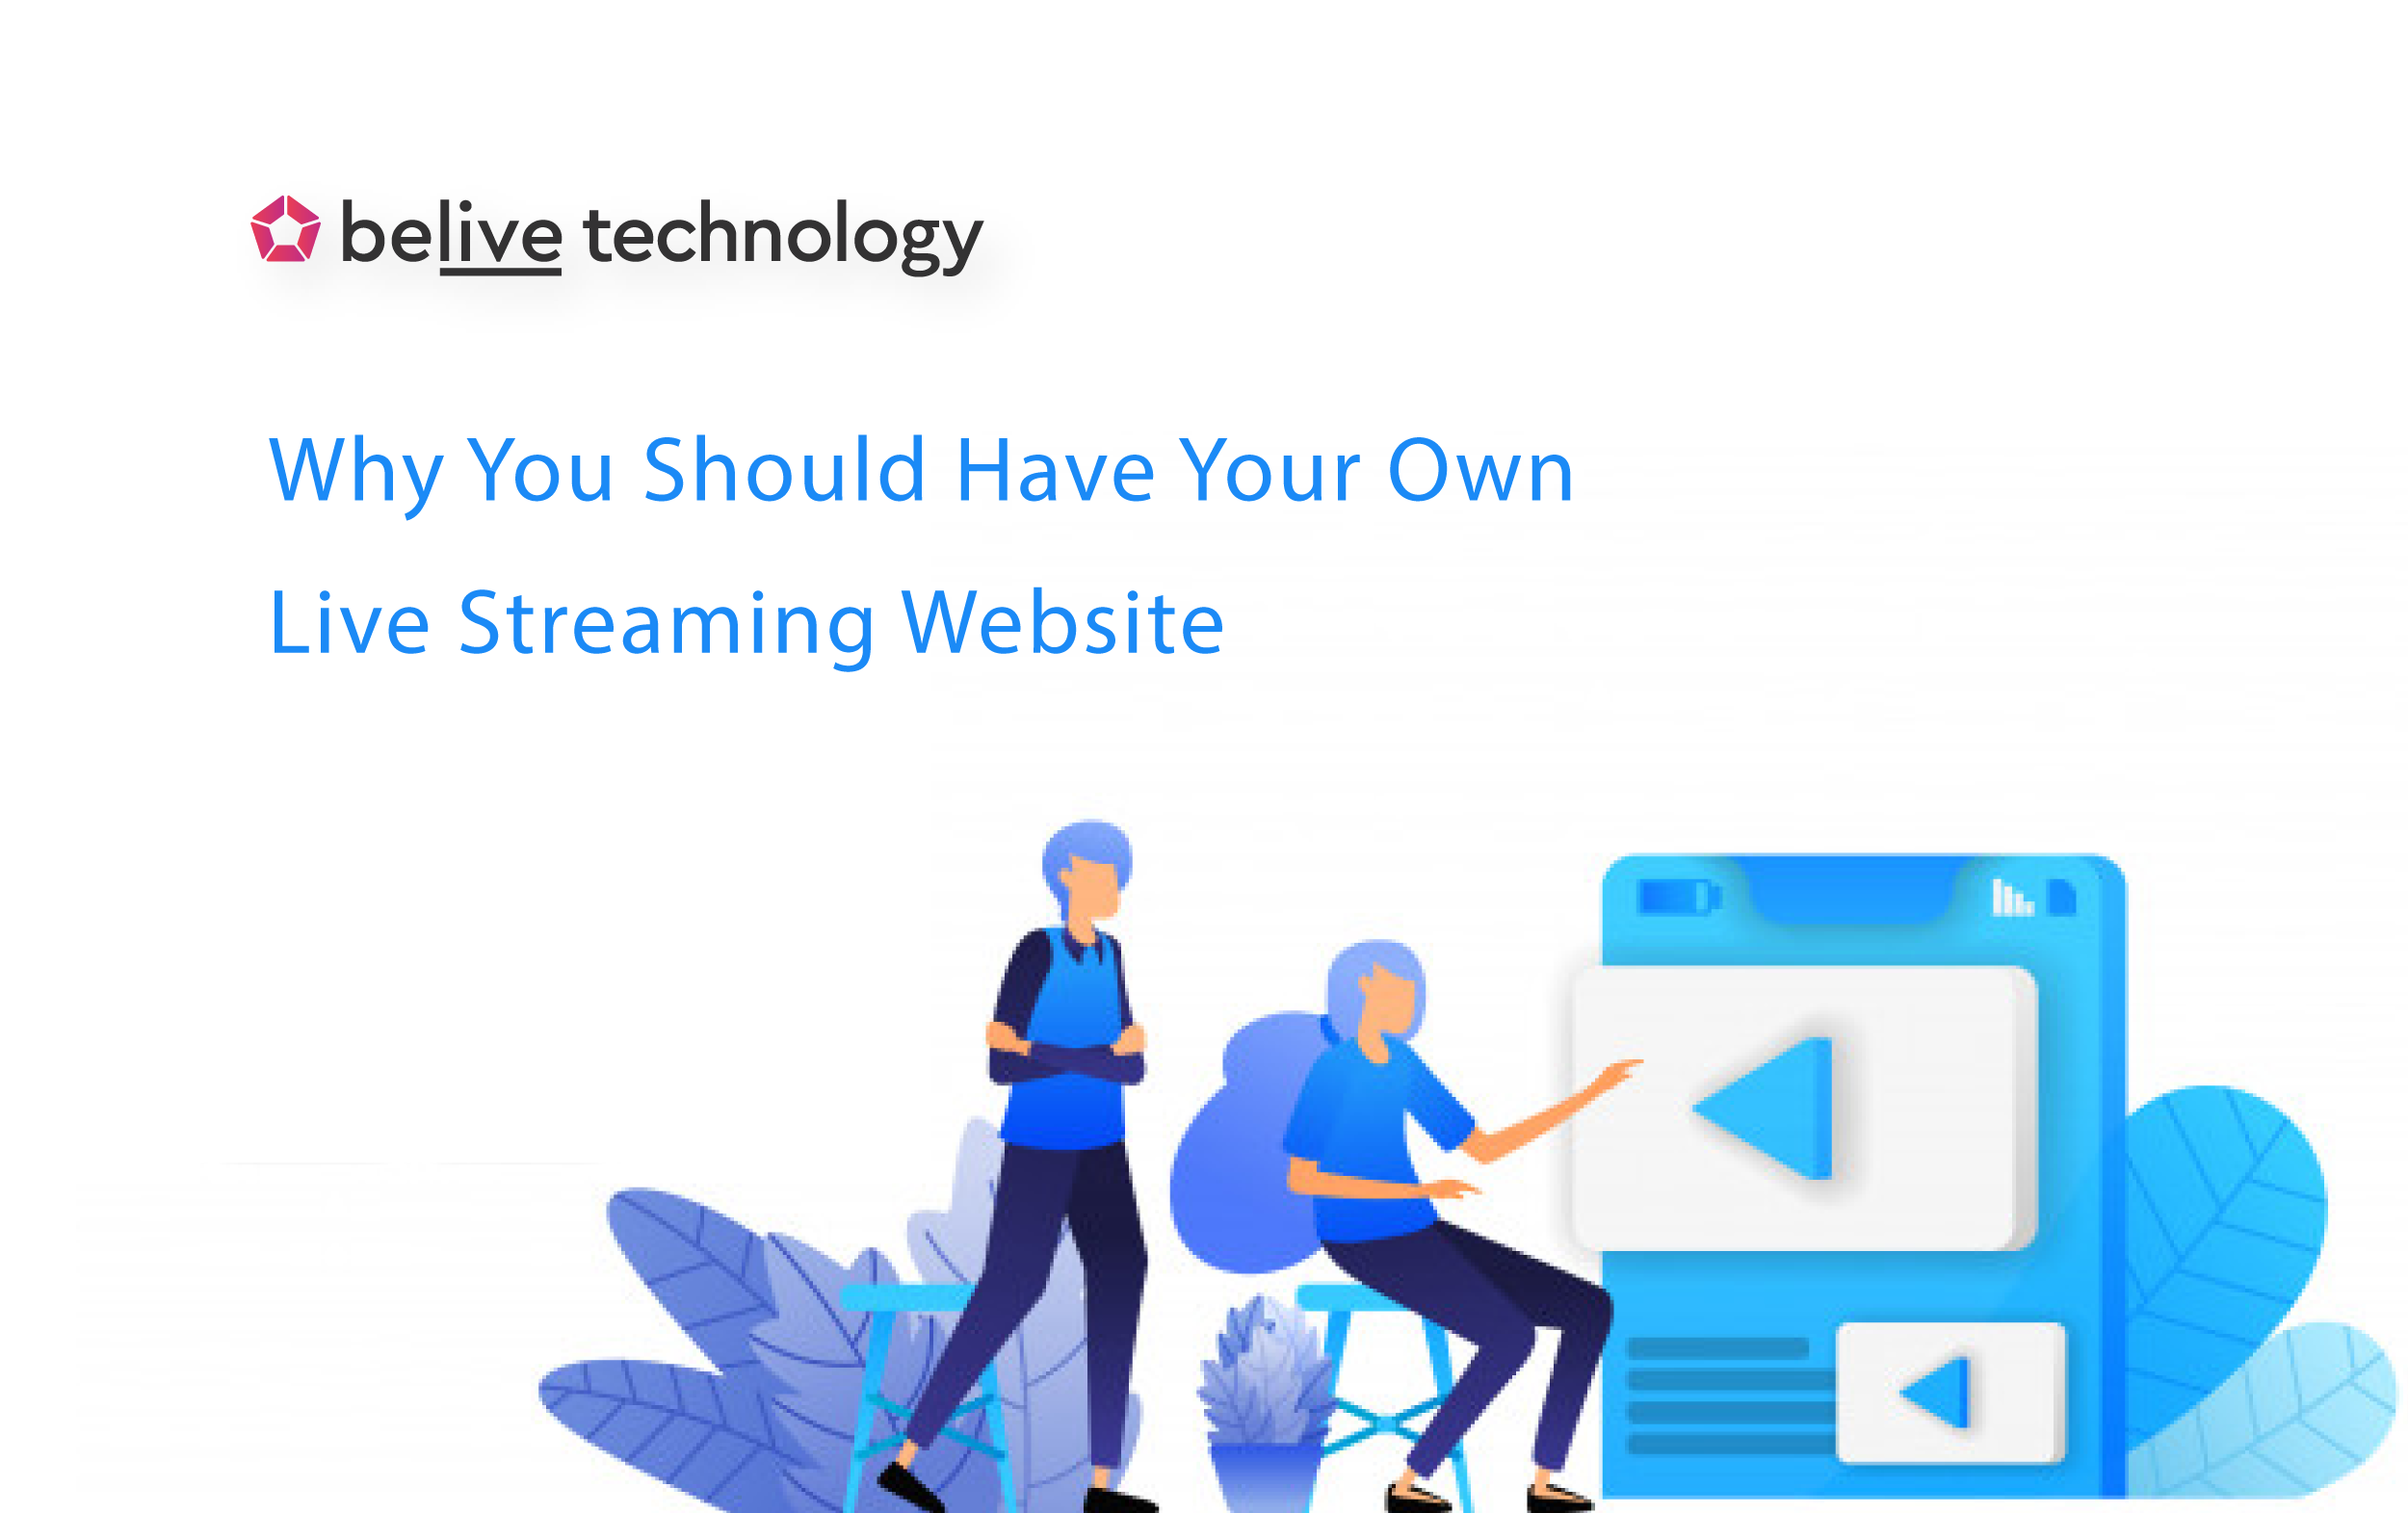 Why You Should Have Your Own Live Streaming Website